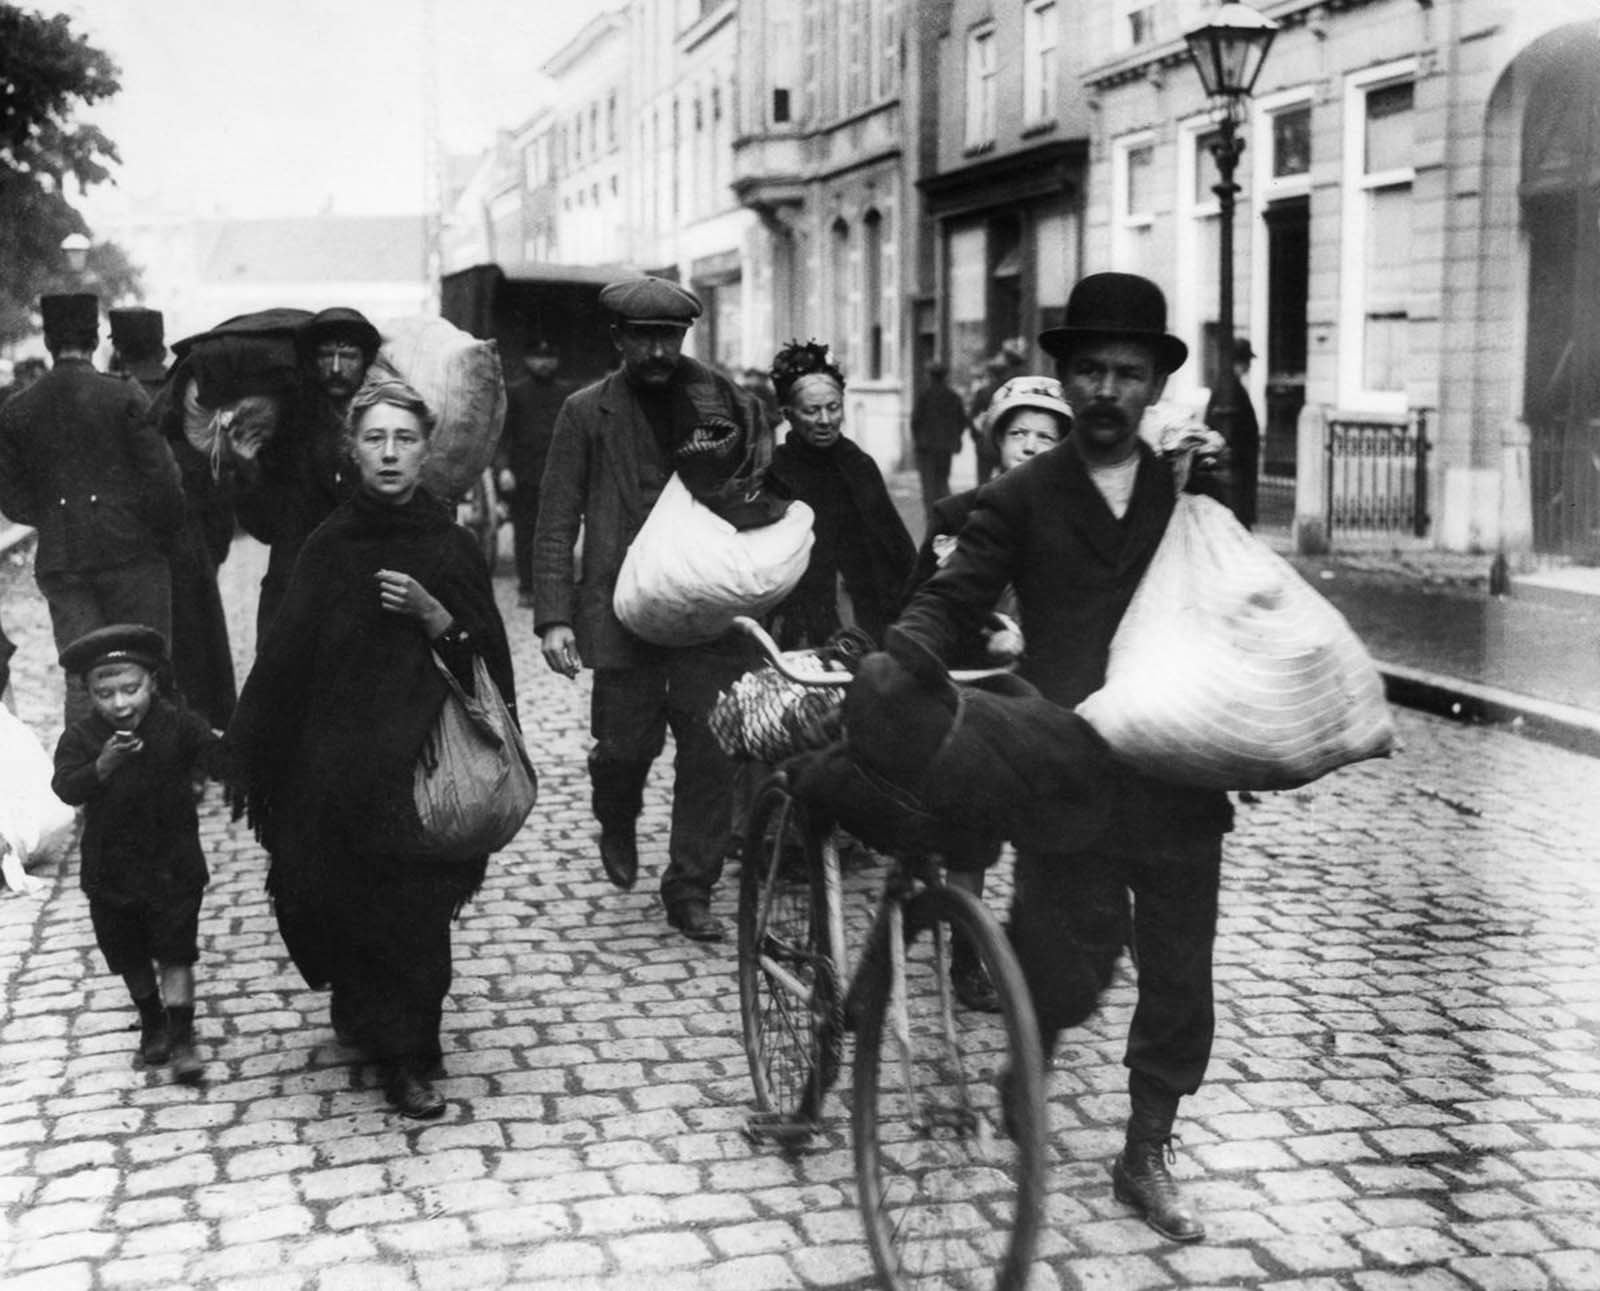 Belgian refugees arrive in the Netherlands. 1914.